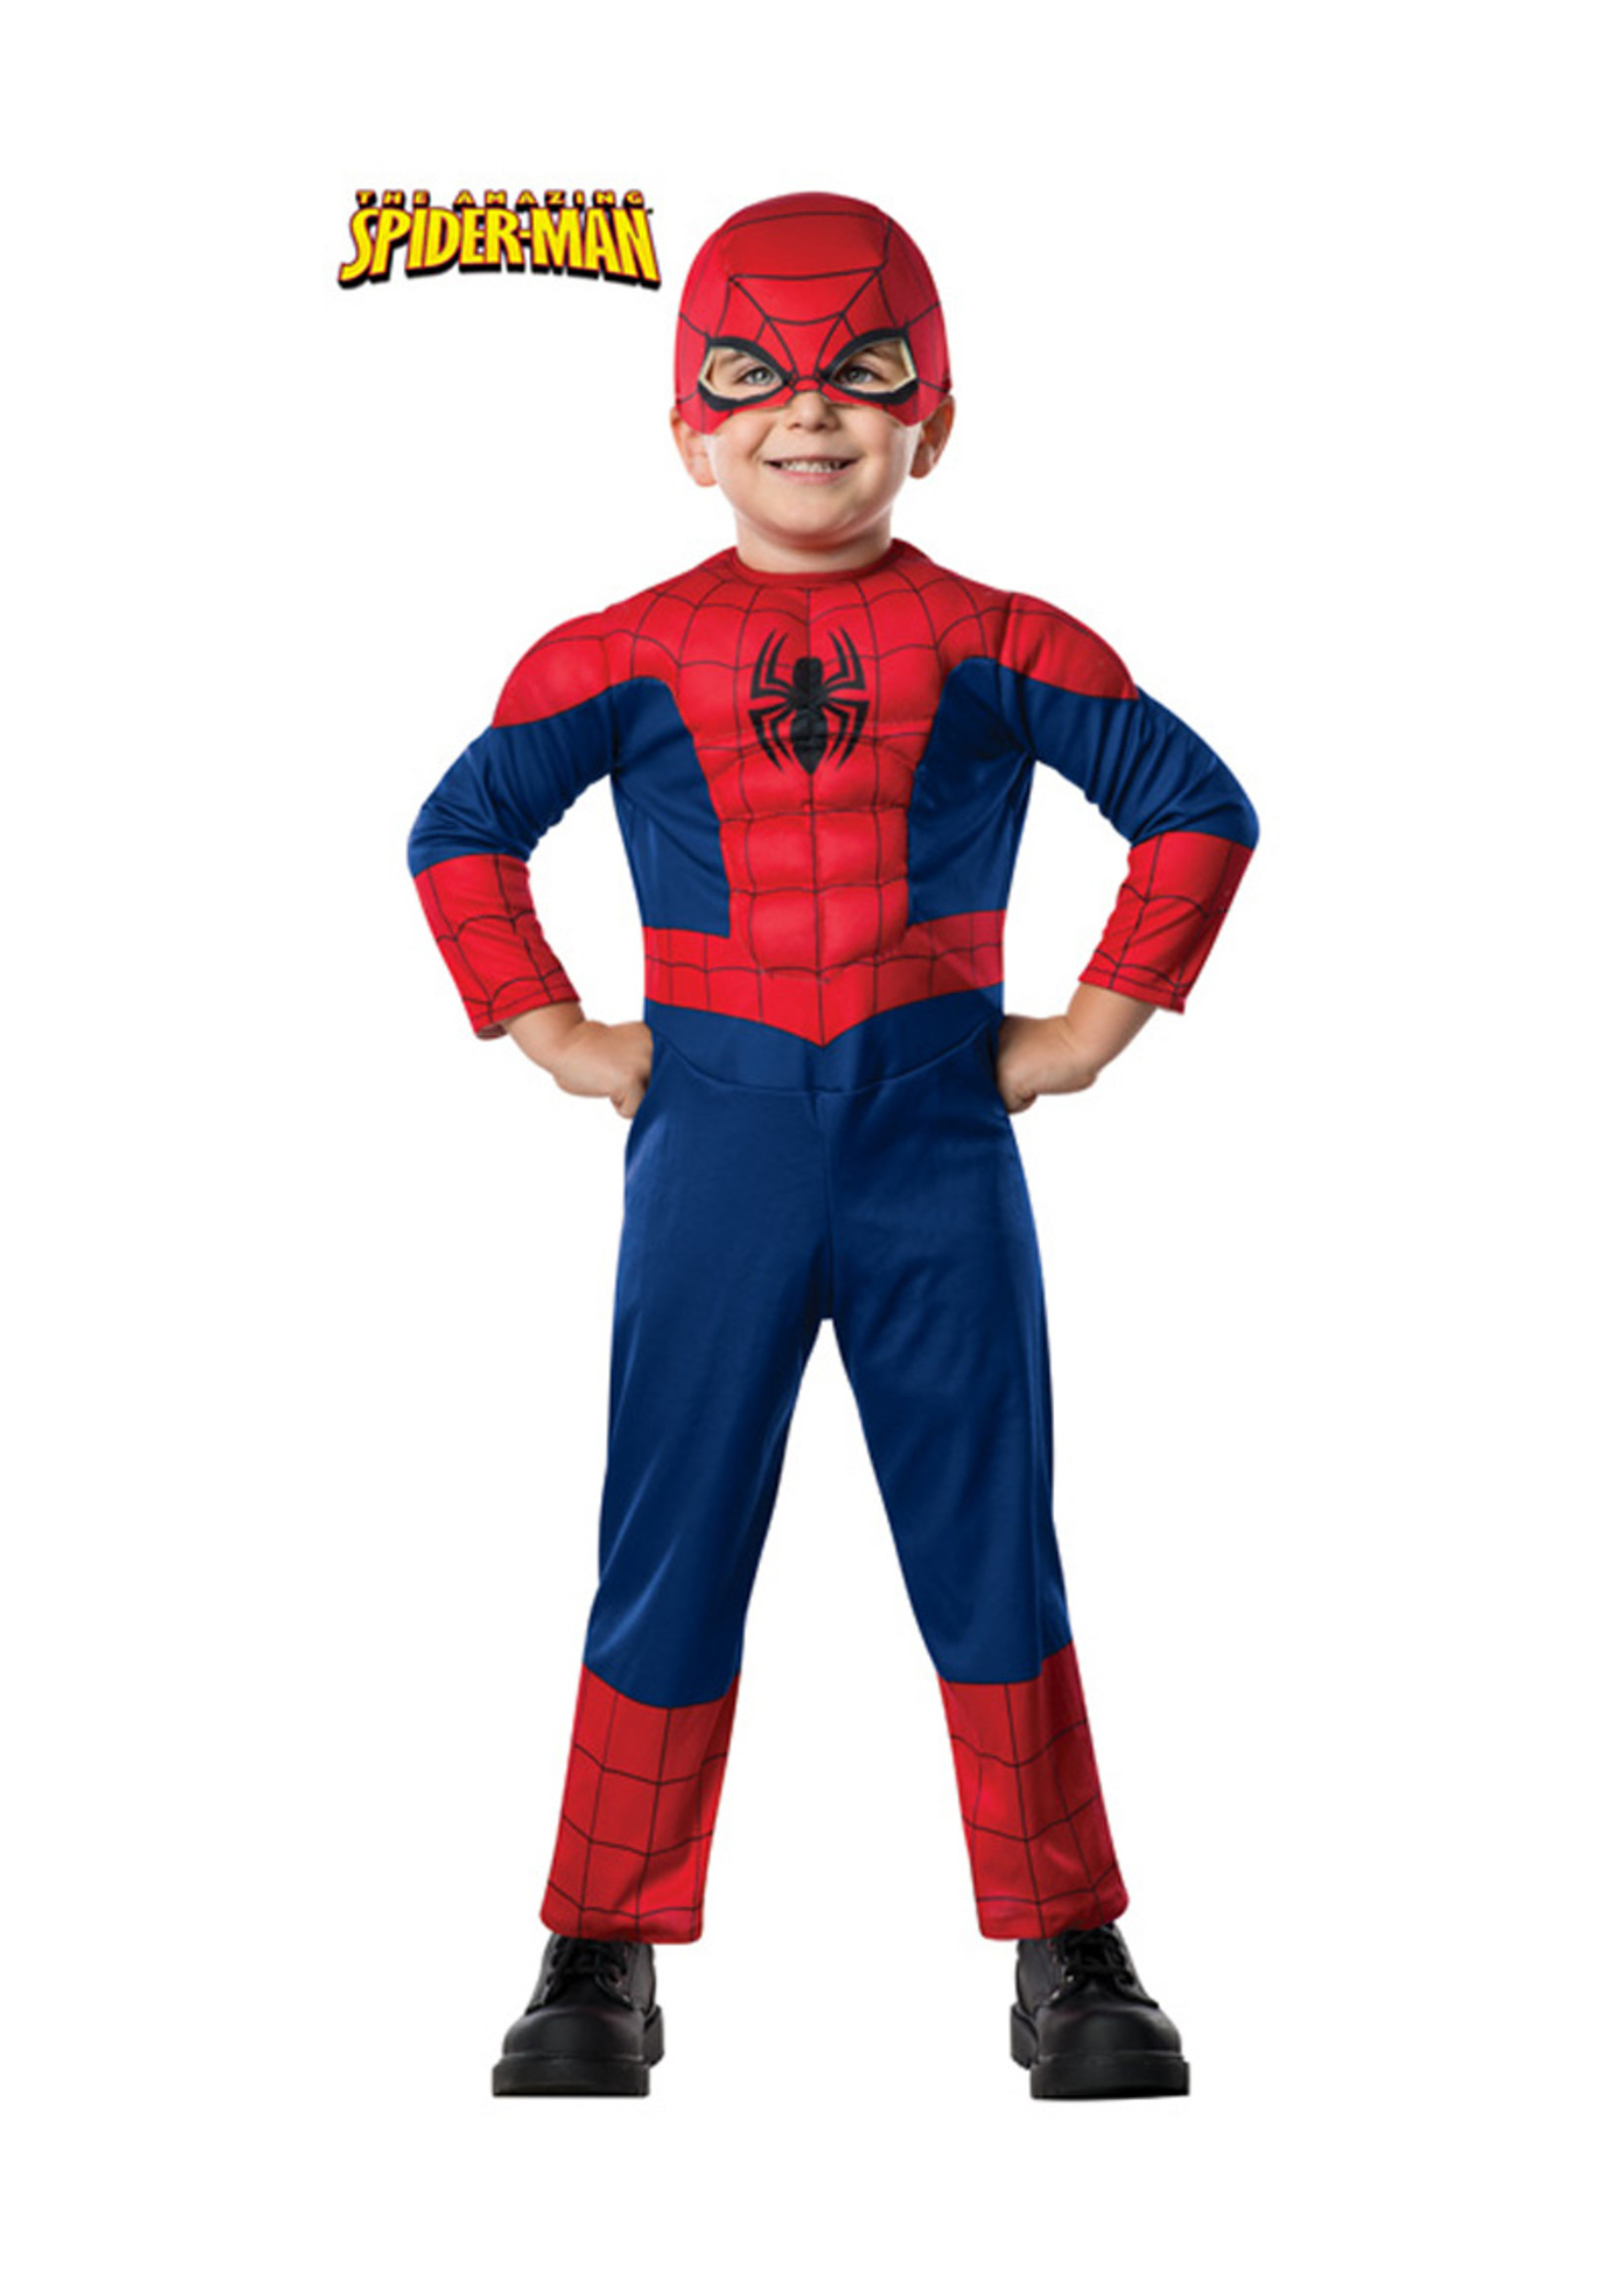 Spider-Man Deluxe Costume - Toddler